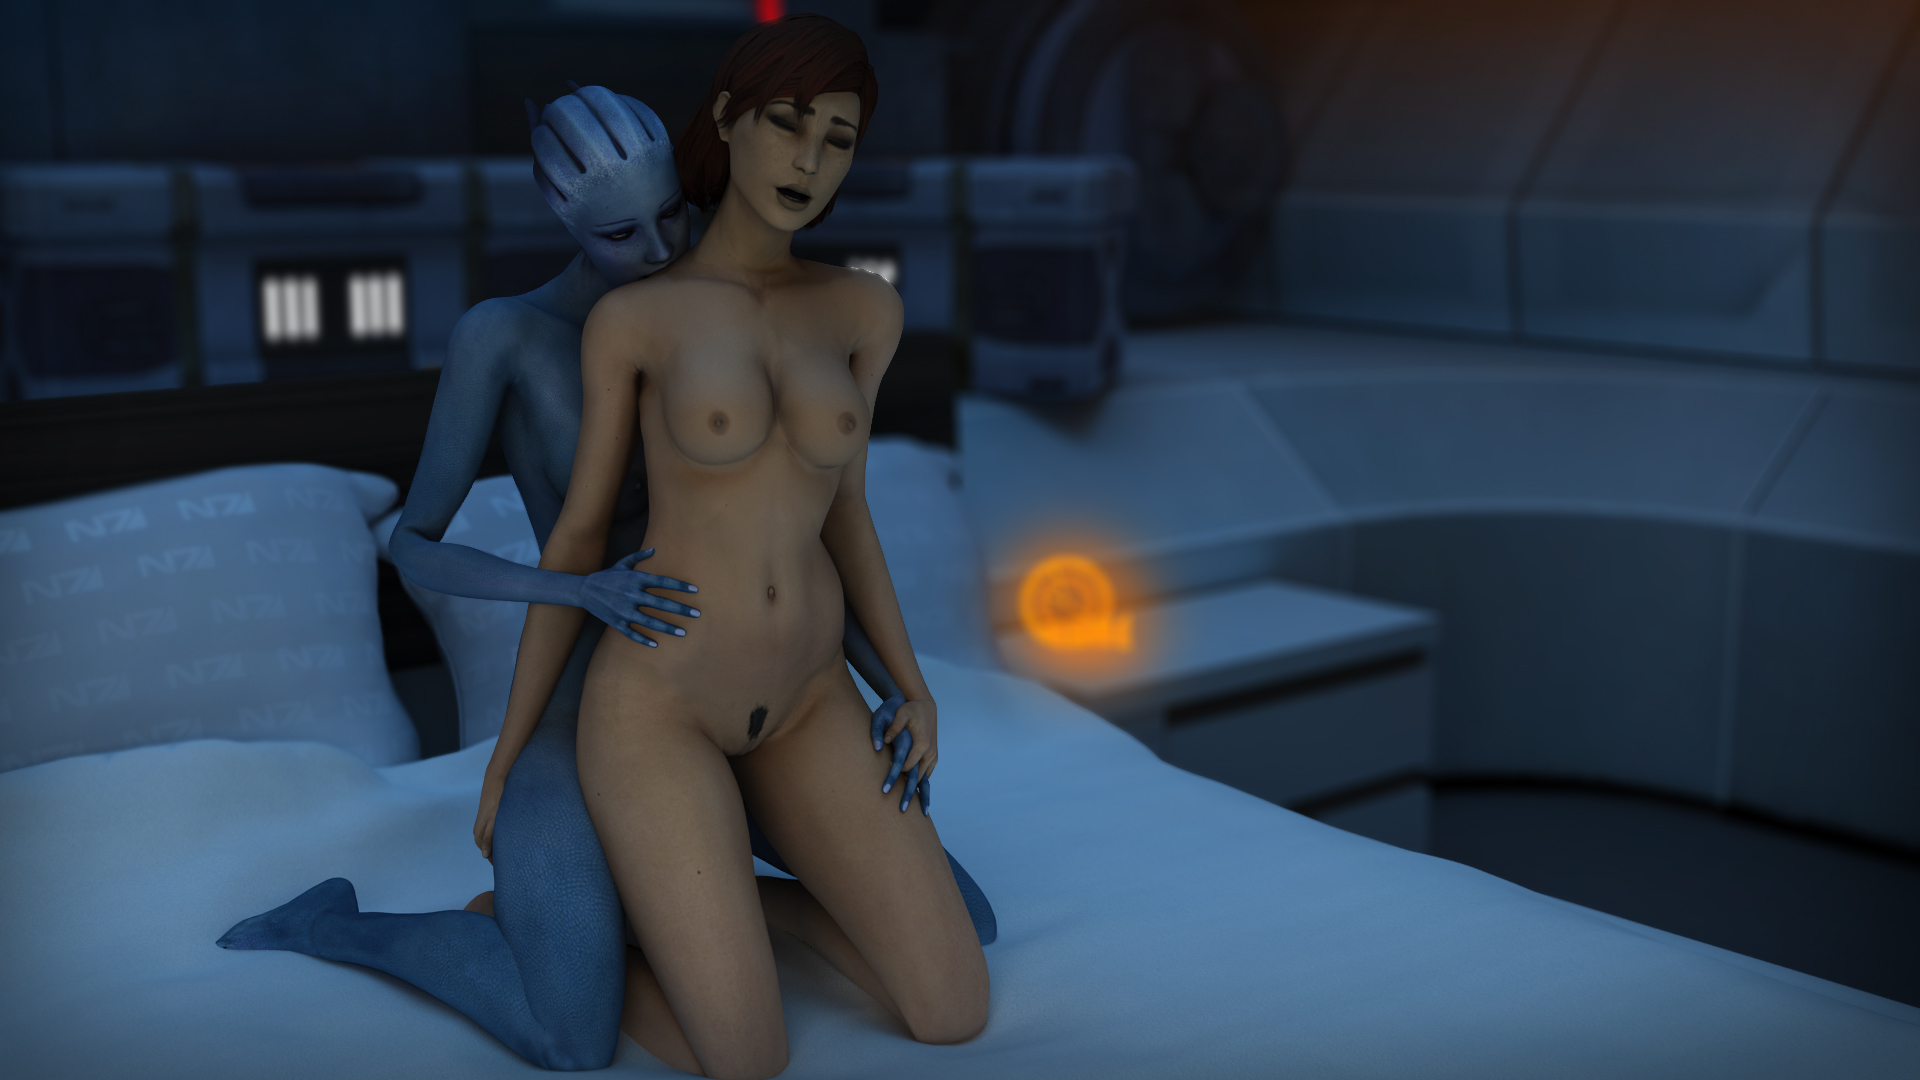 Remarkable, rather Mass effect sex nude agree, remarkable